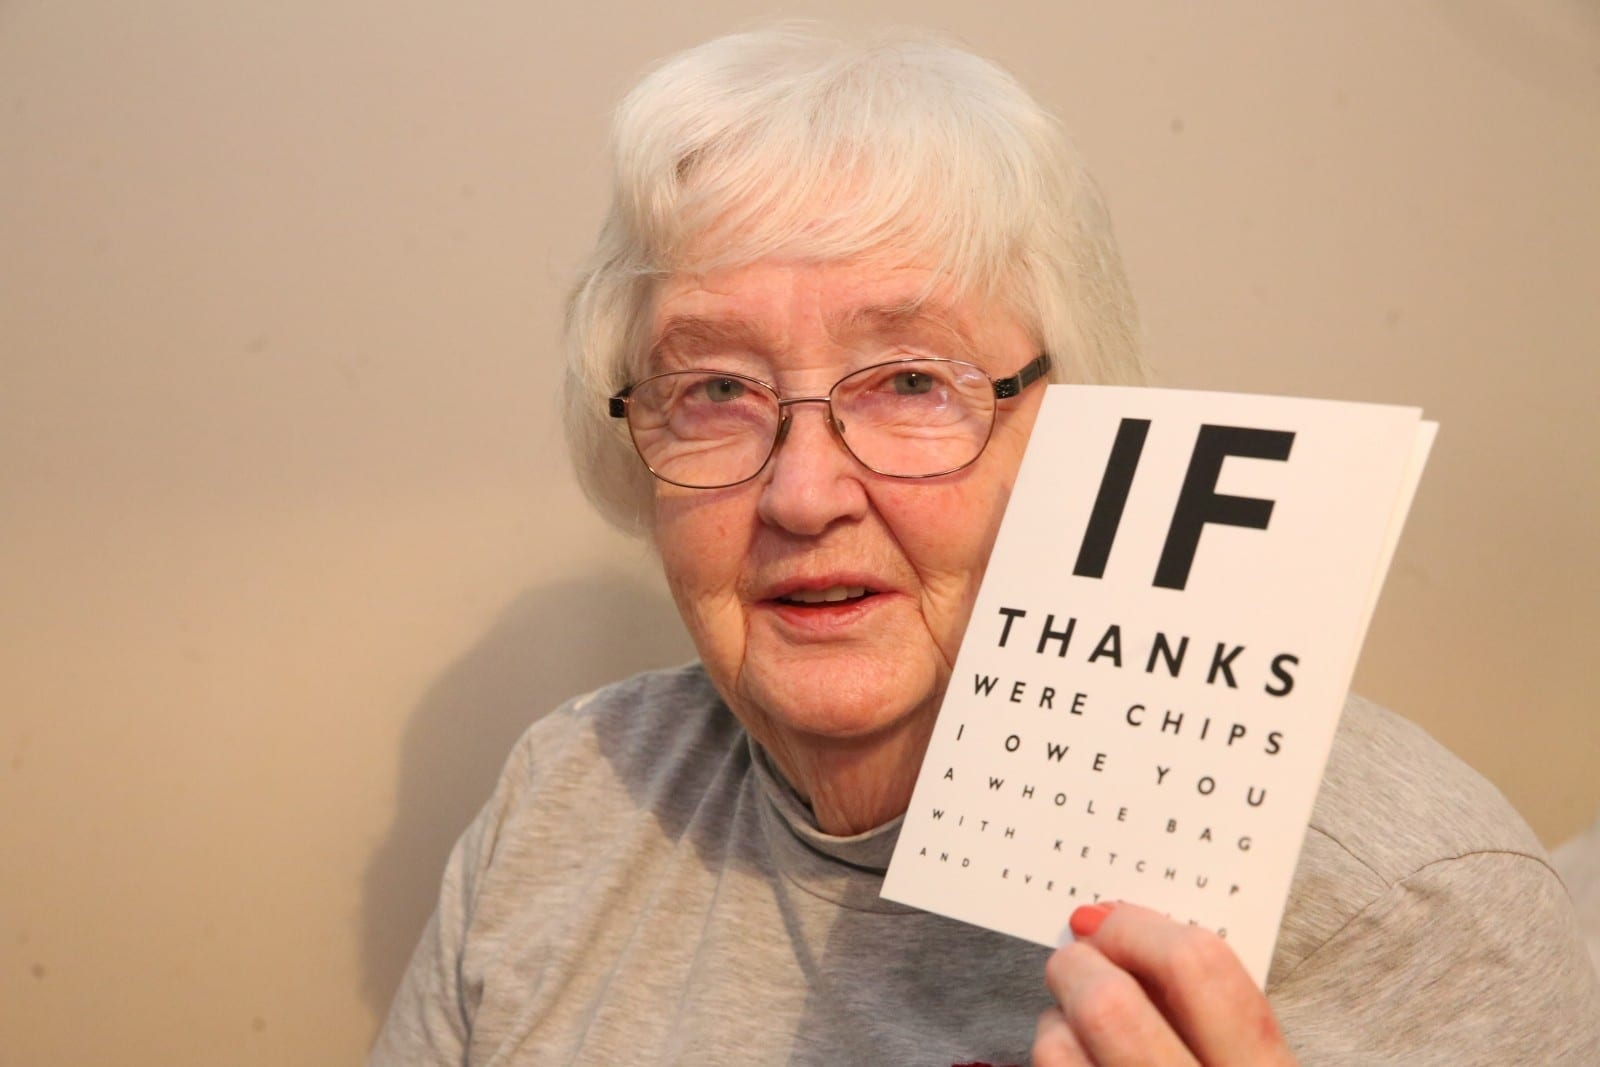 'They Saved My Life' – 80-Year-Old Had Her Life Saved By Opticians – Who Spotted She Was Having A Stroke